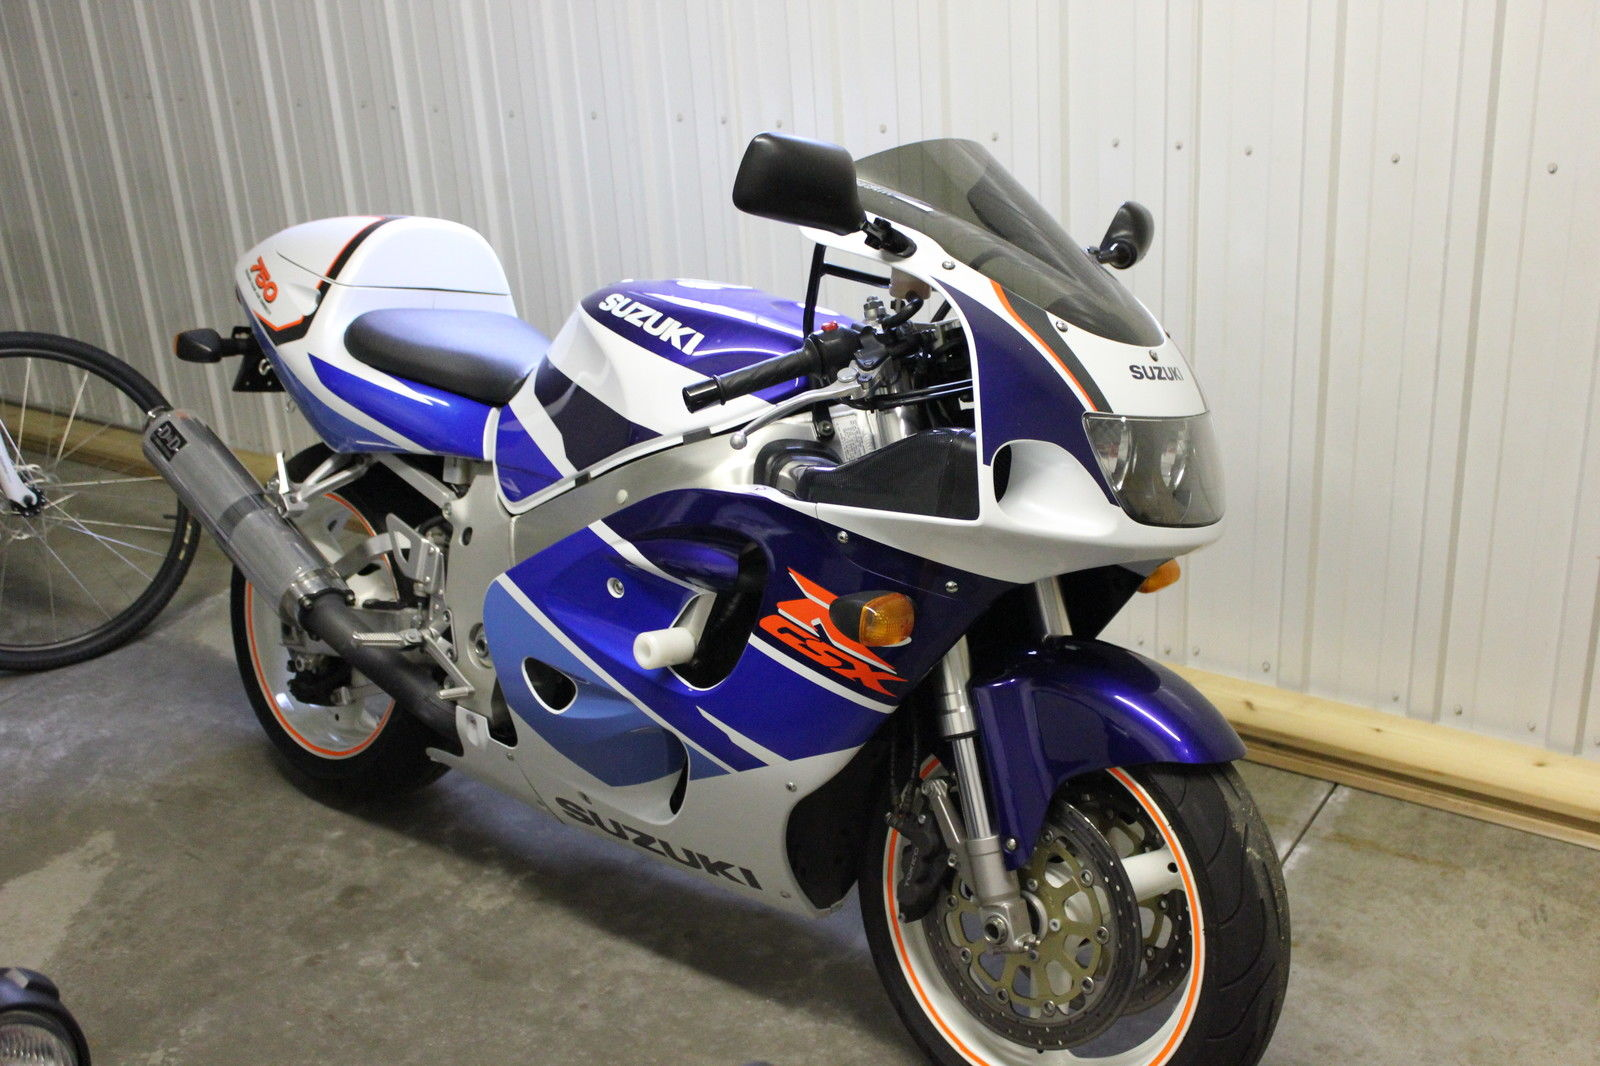 mint middleweight 1997 suzuki gsxr 750 rare sportbikes for sale. Black Bedroom Furniture Sets. Home Design Ideas